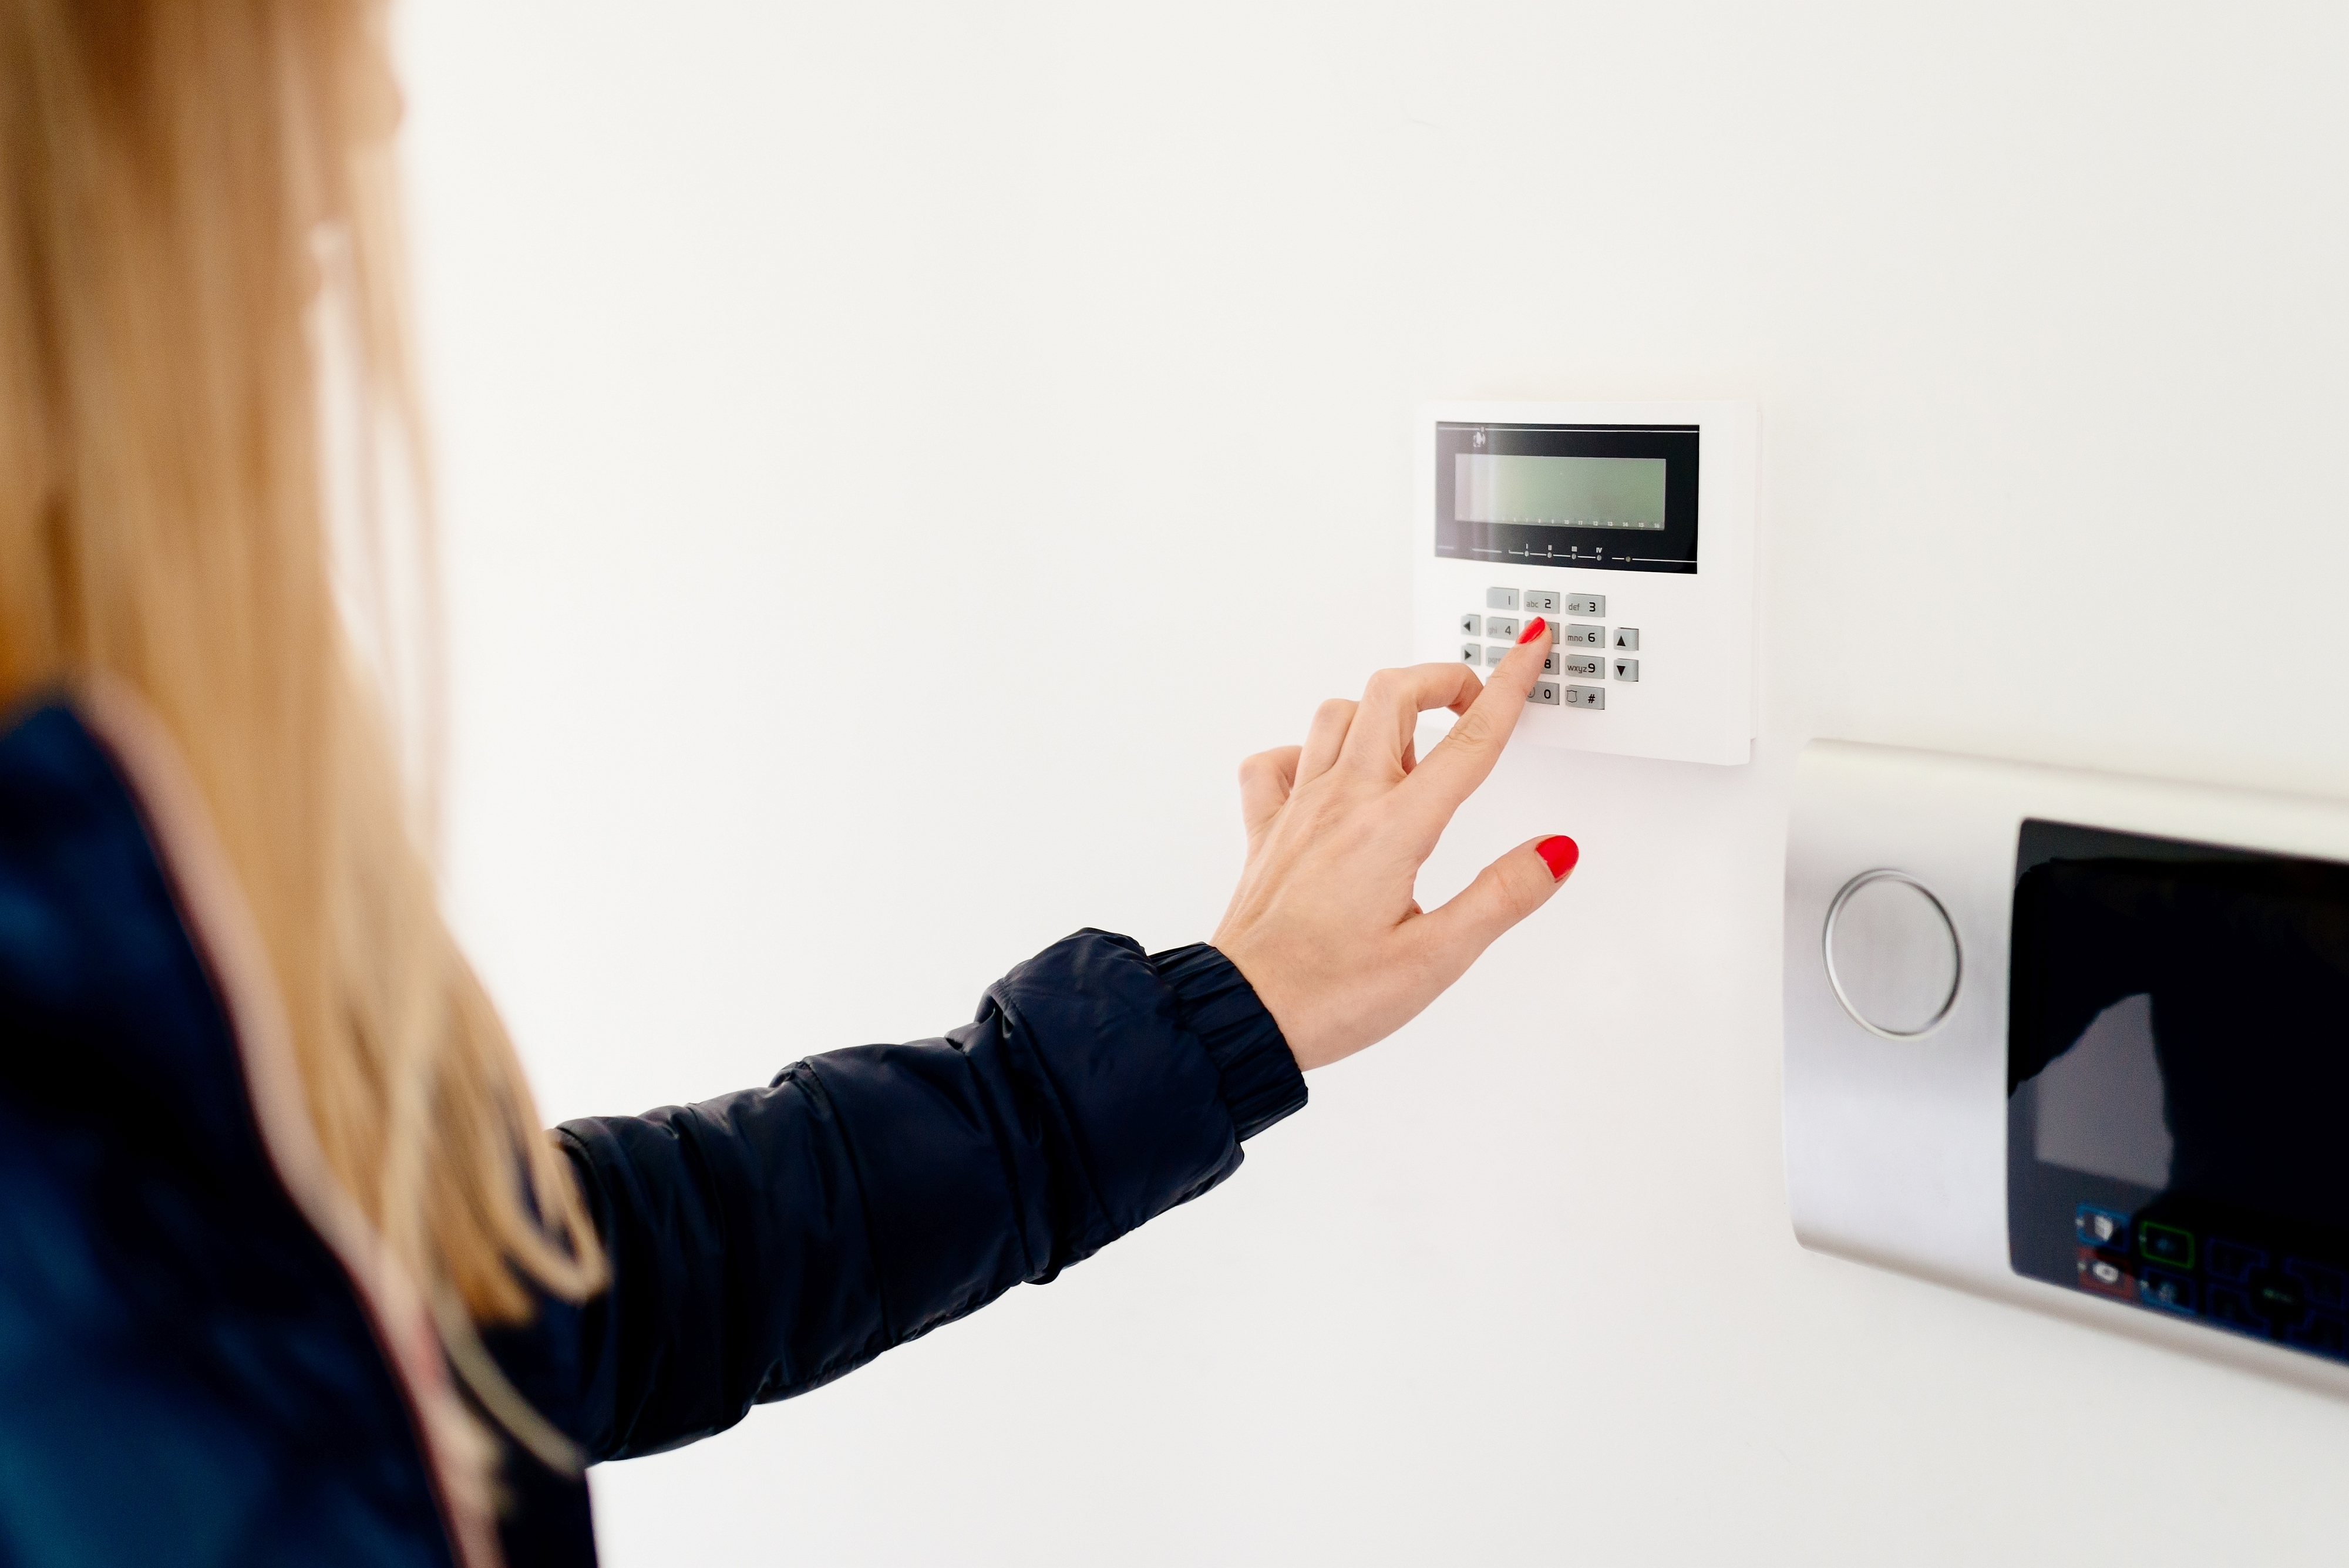 Security and Fire Detection Systems